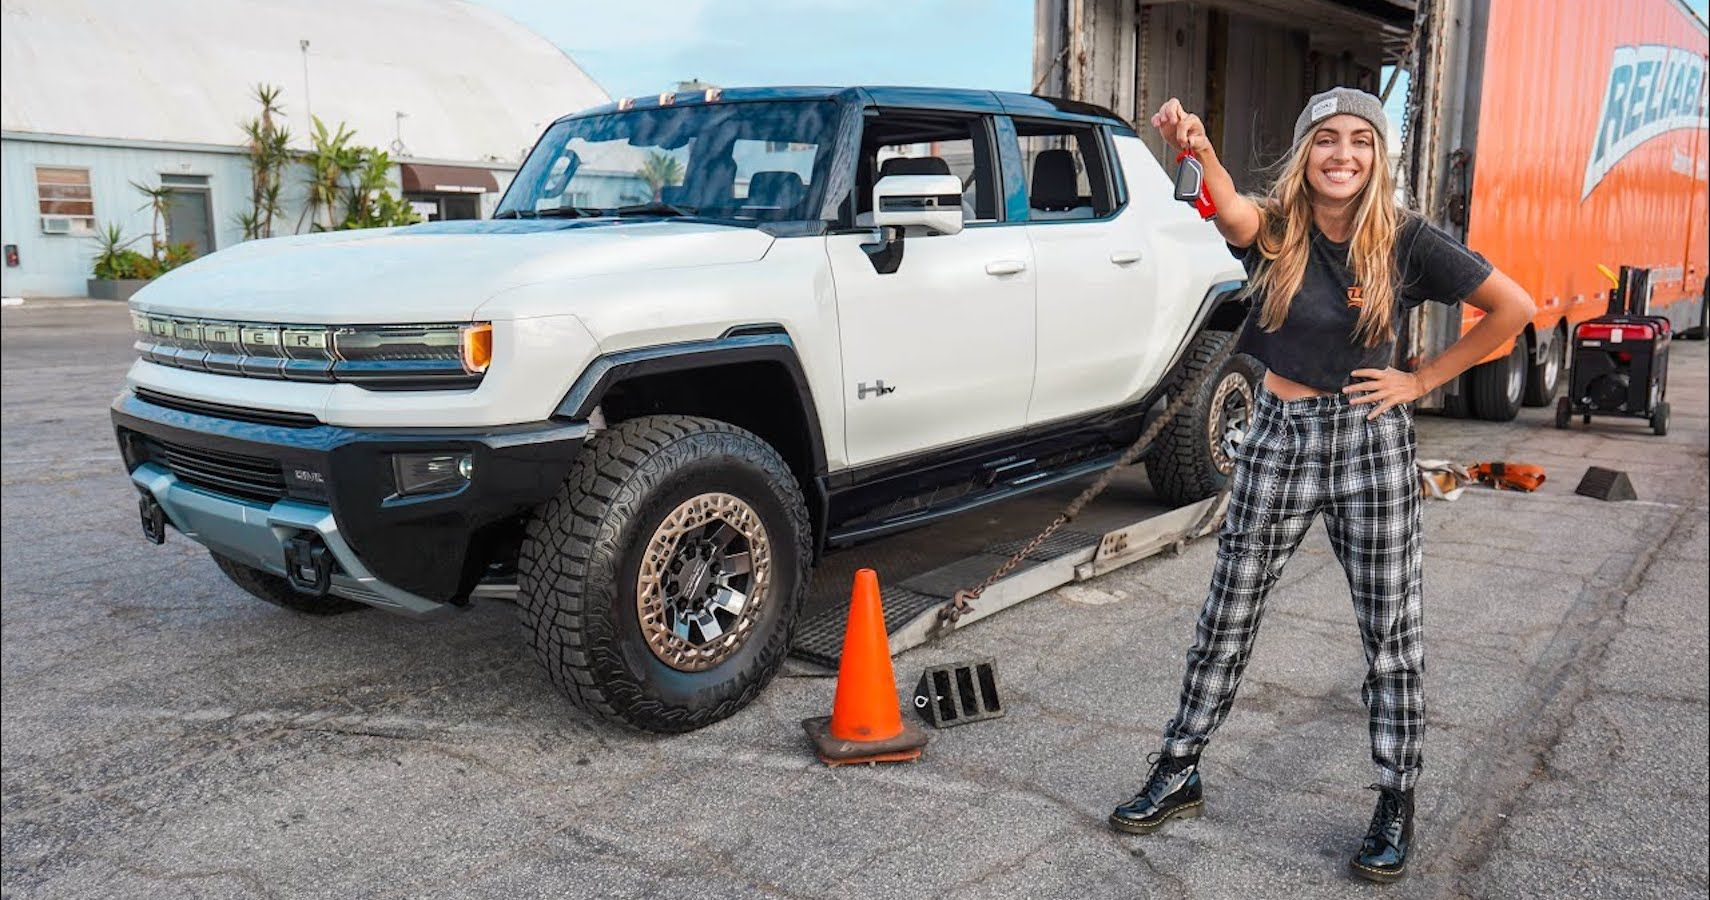 Emelia Hartford Uncovers All The 2022 Hummer EV's Hidden Easter Eggs You Don't Know About